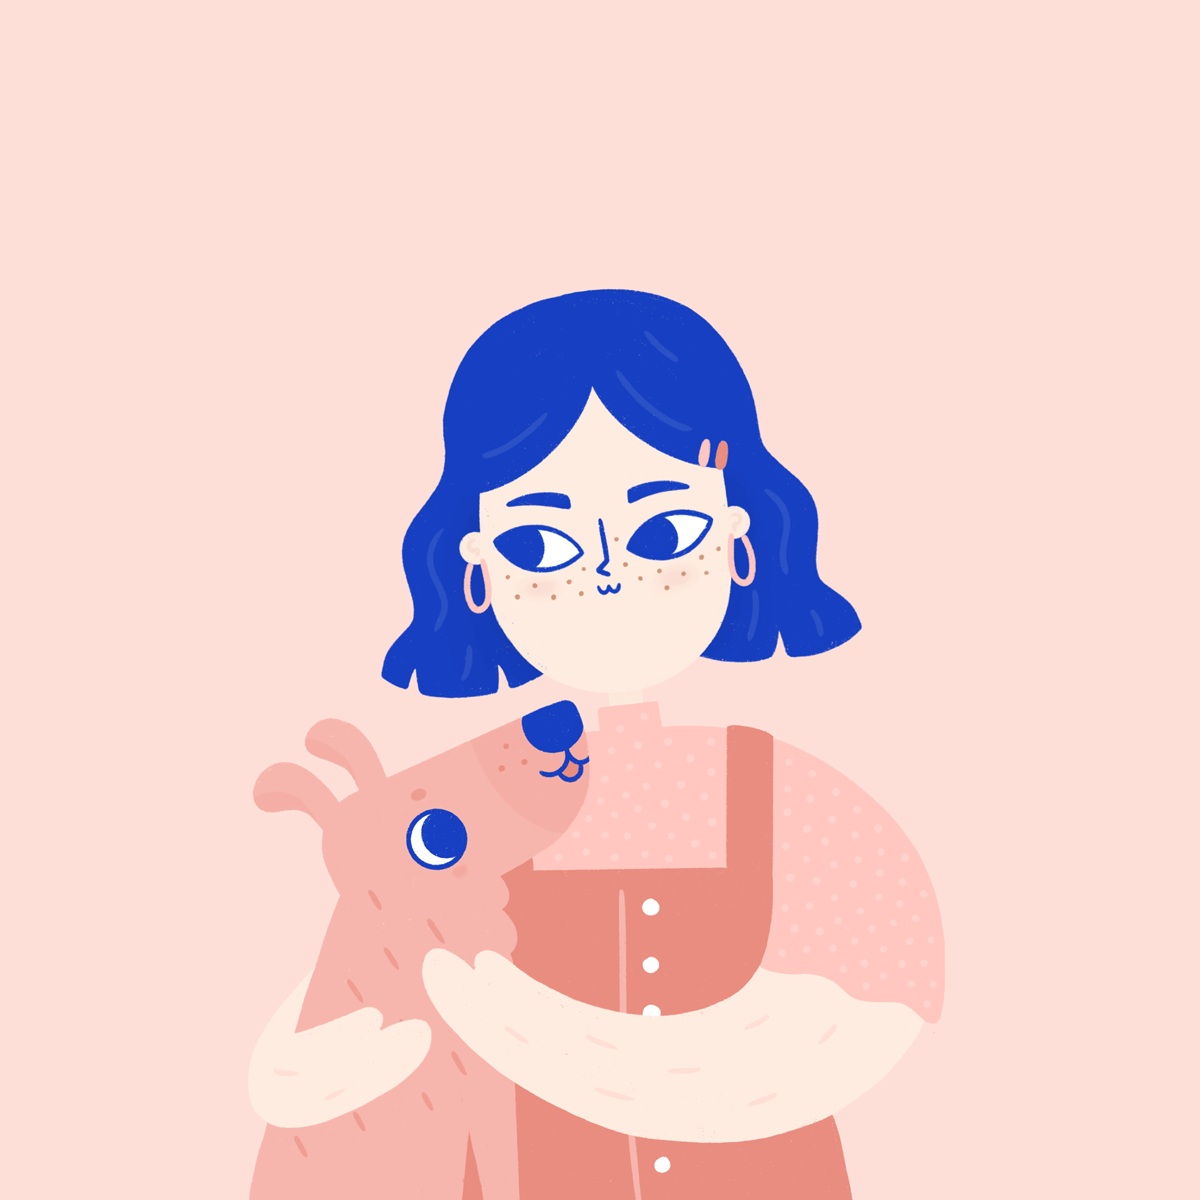 cad_illustration_selfportrait.png